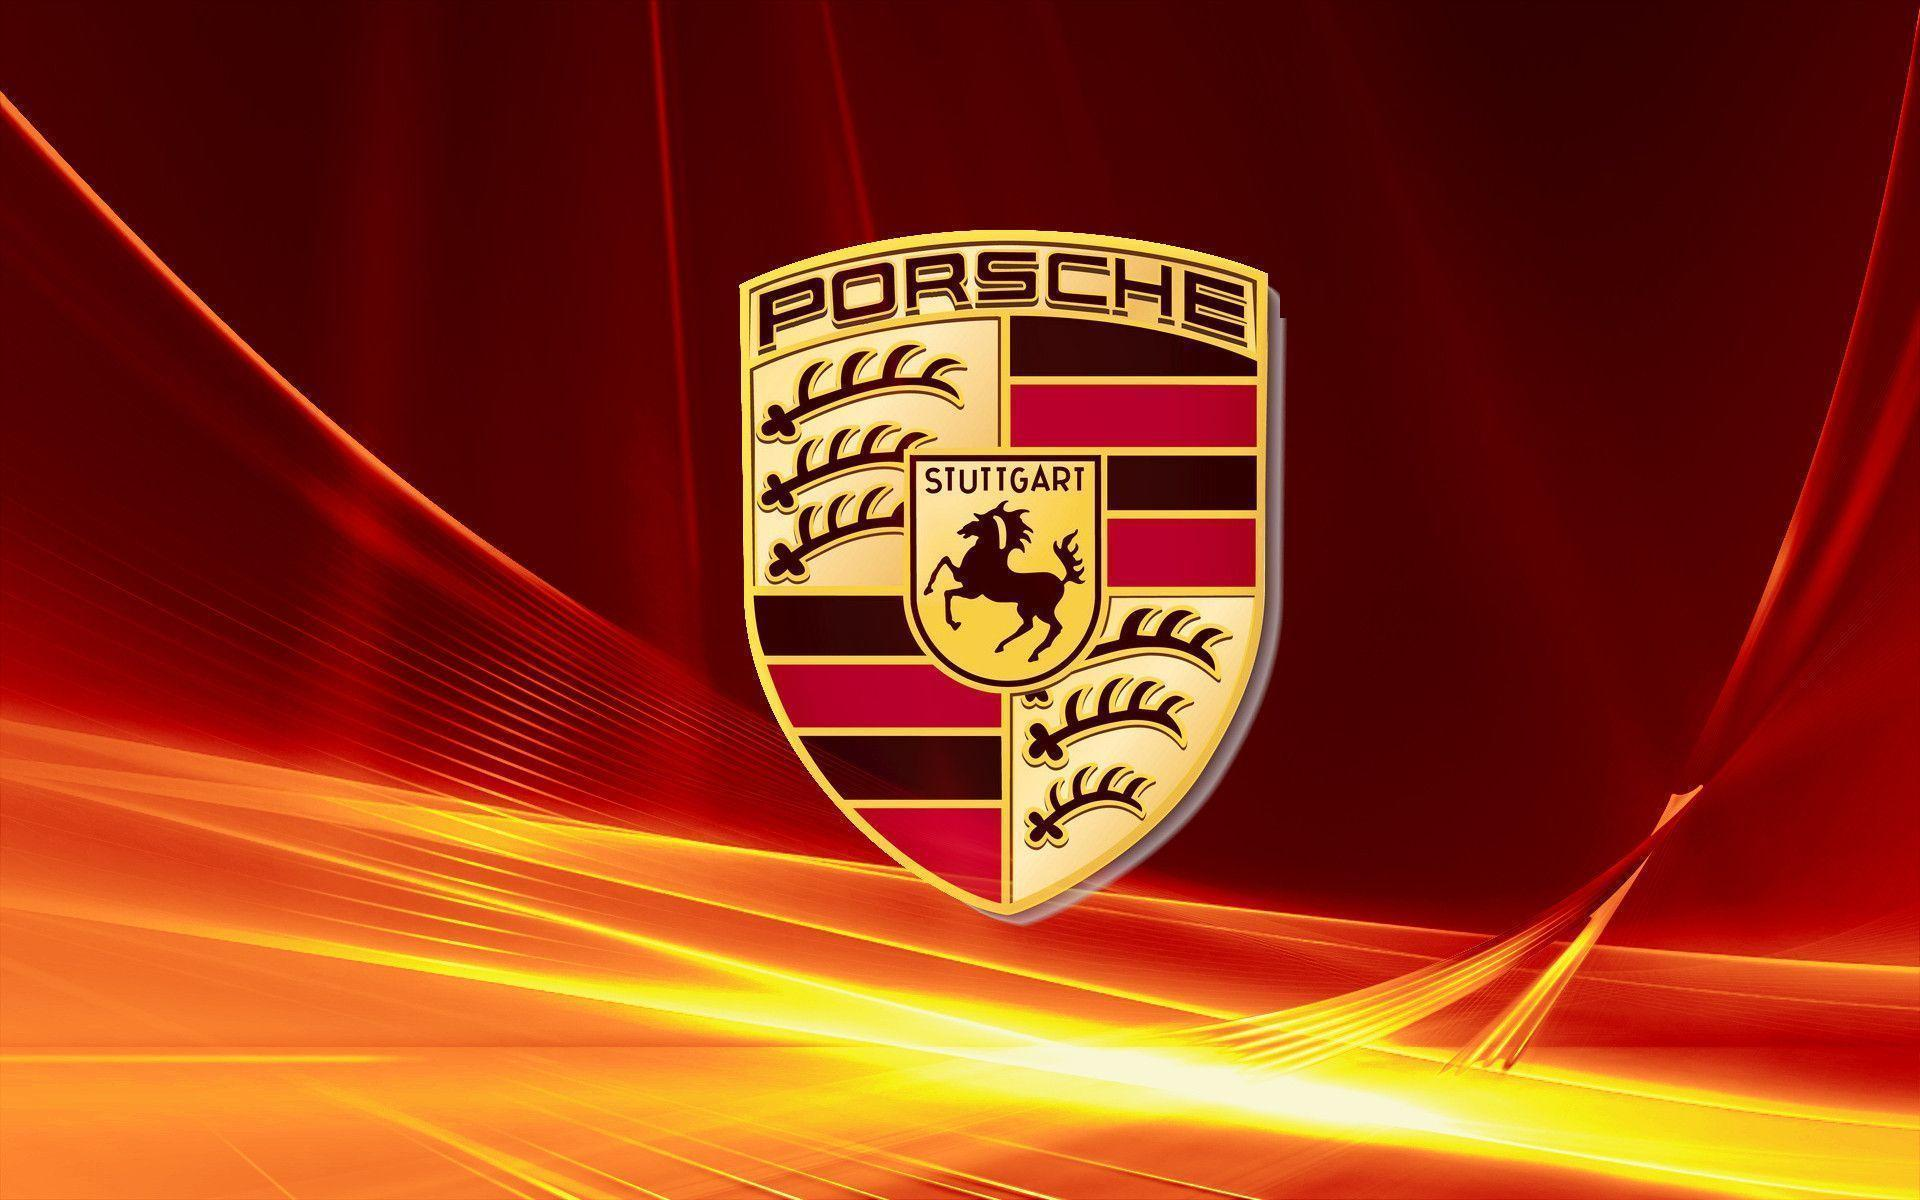 Porsche Logo Wallpapers - Full HD wallpaper search